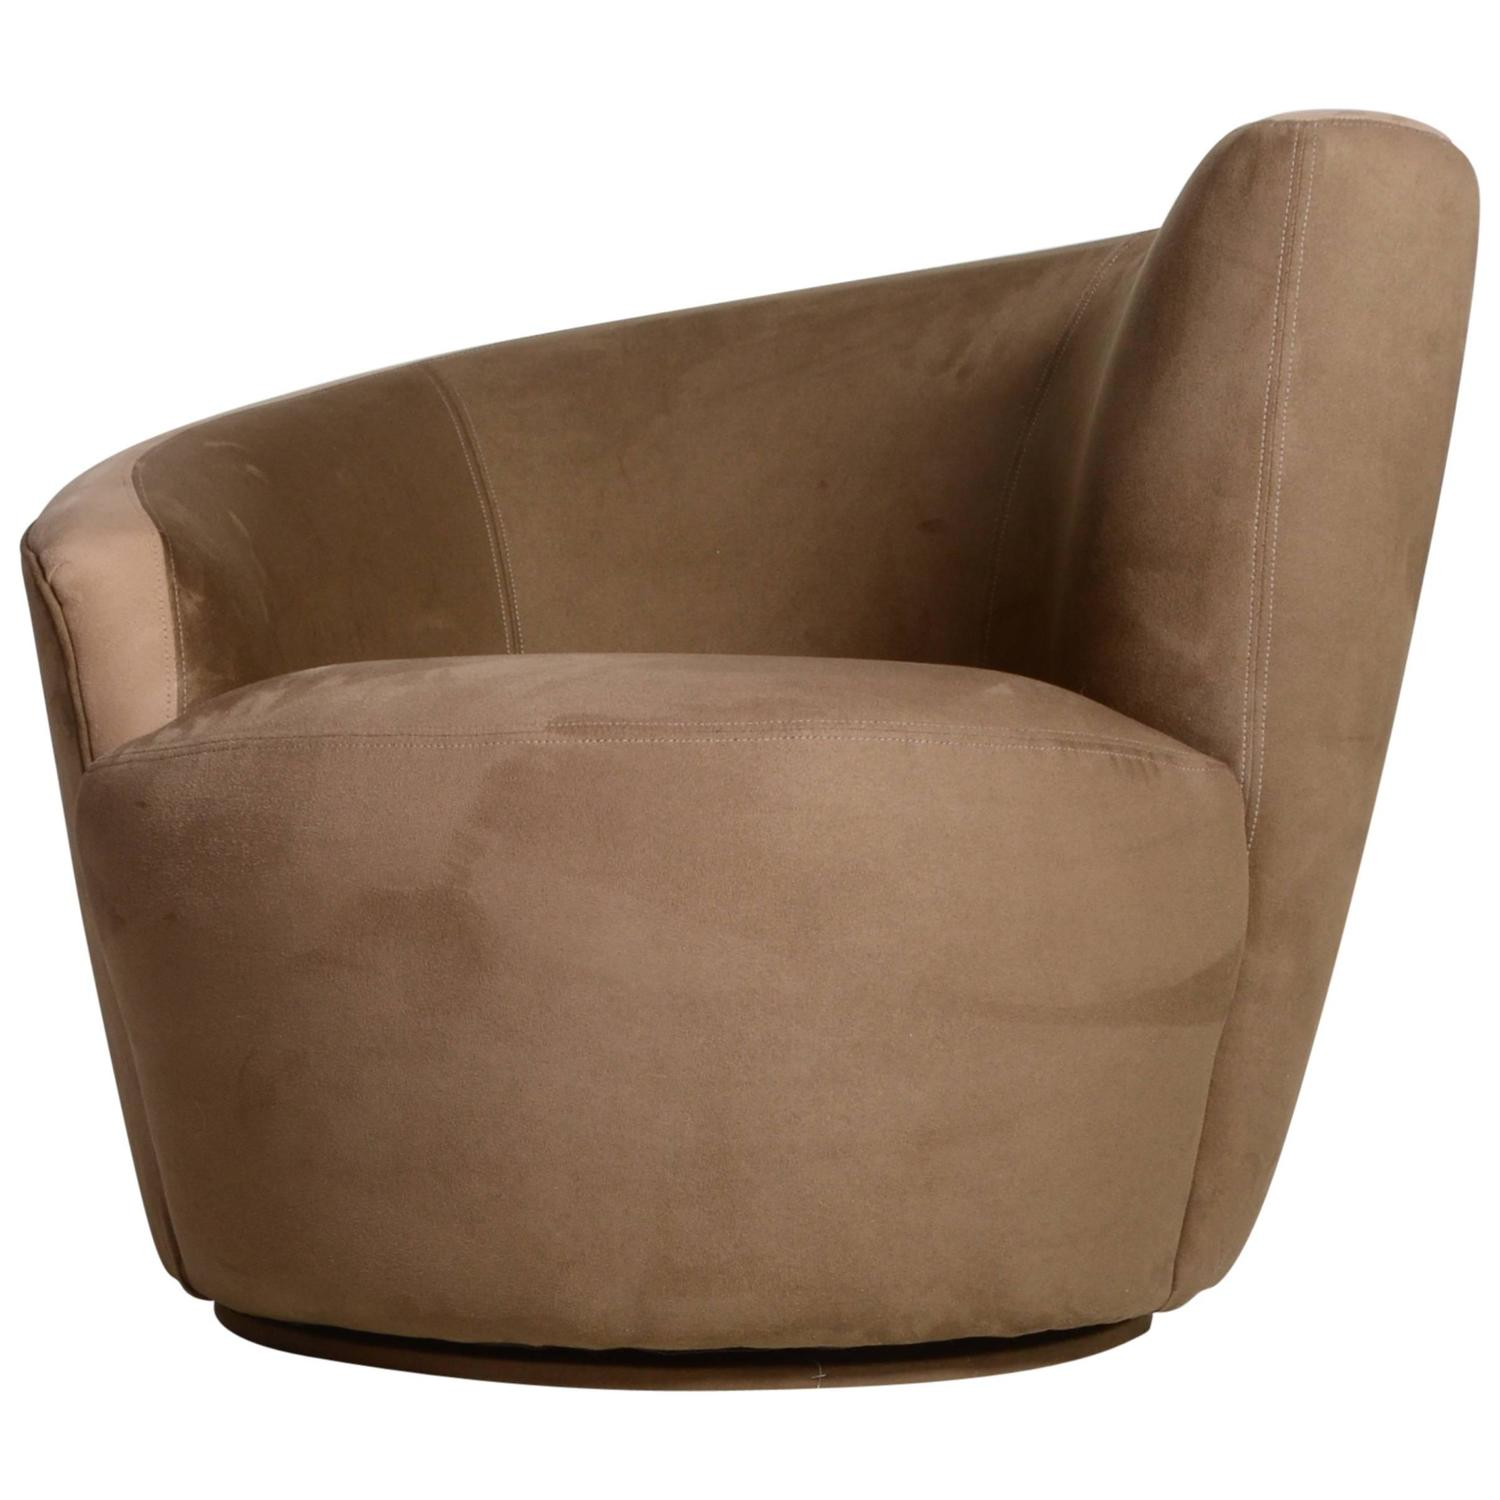 pdp has to your added been chairs chair living cart spaces swivel theo qty successfully